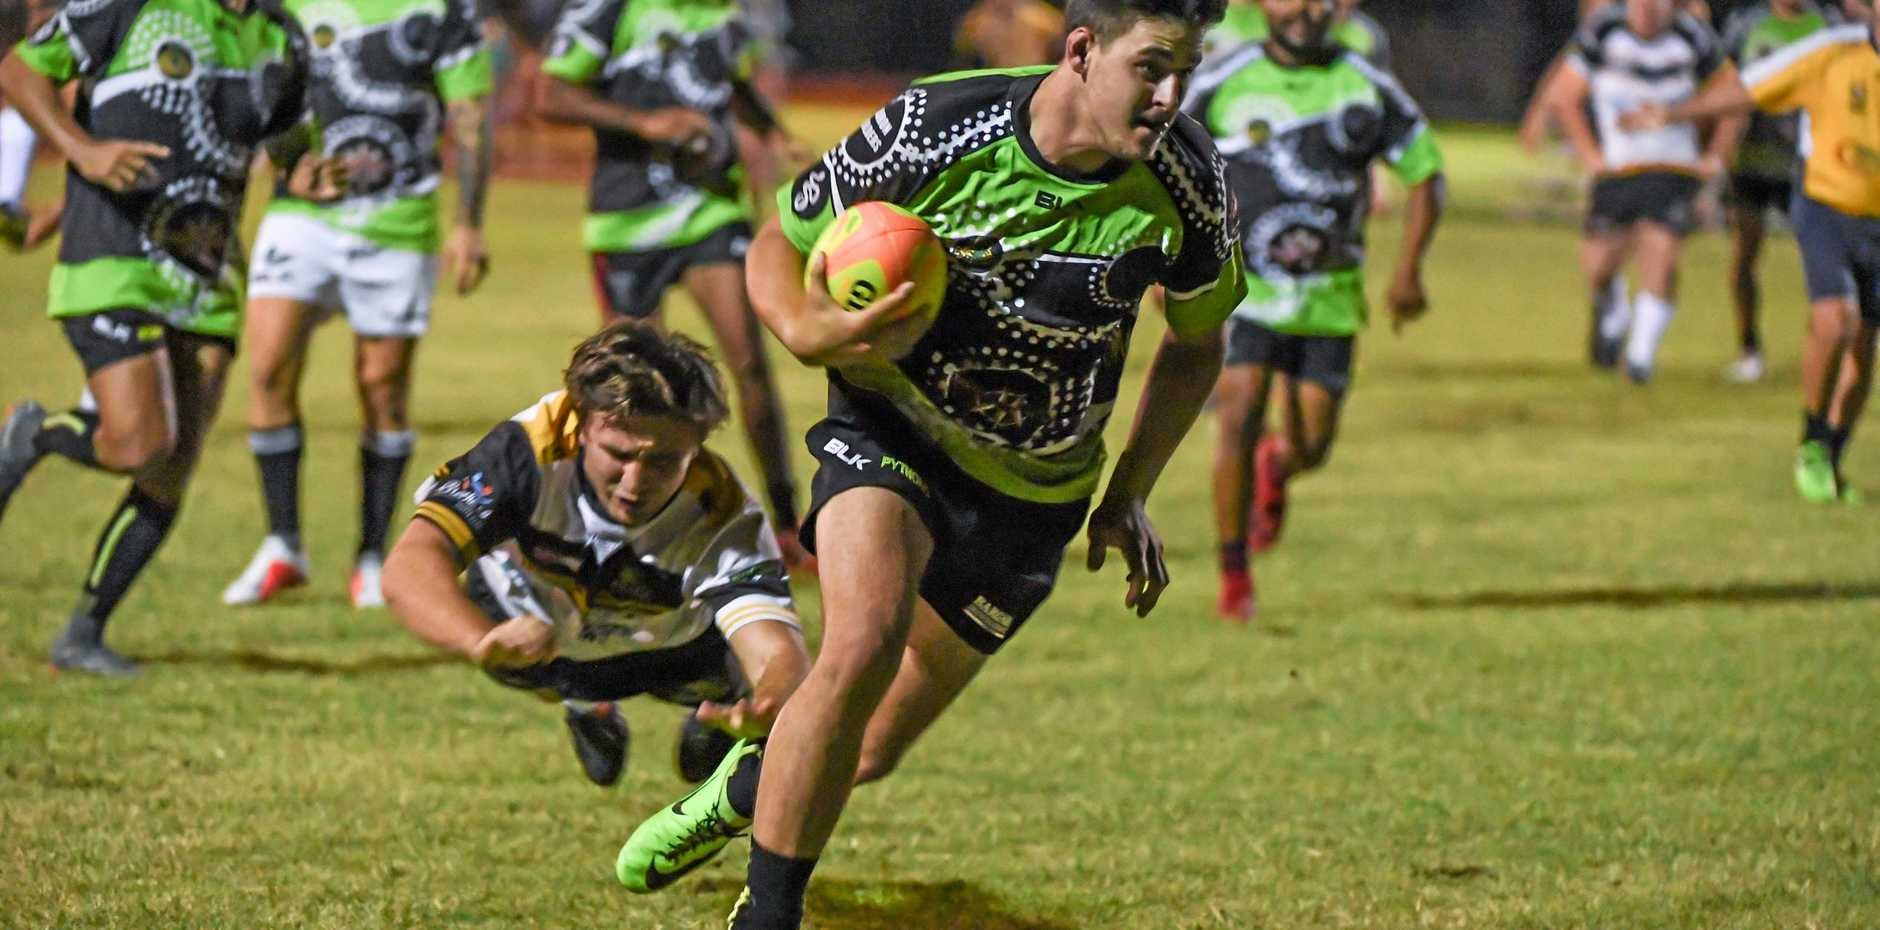 Bundaberg Pythons Trent Seeds on his way to cross the line for a try earlier this season. Today he will play for them in the Spring Cup and play for Past Highs Combined Country in cricket.